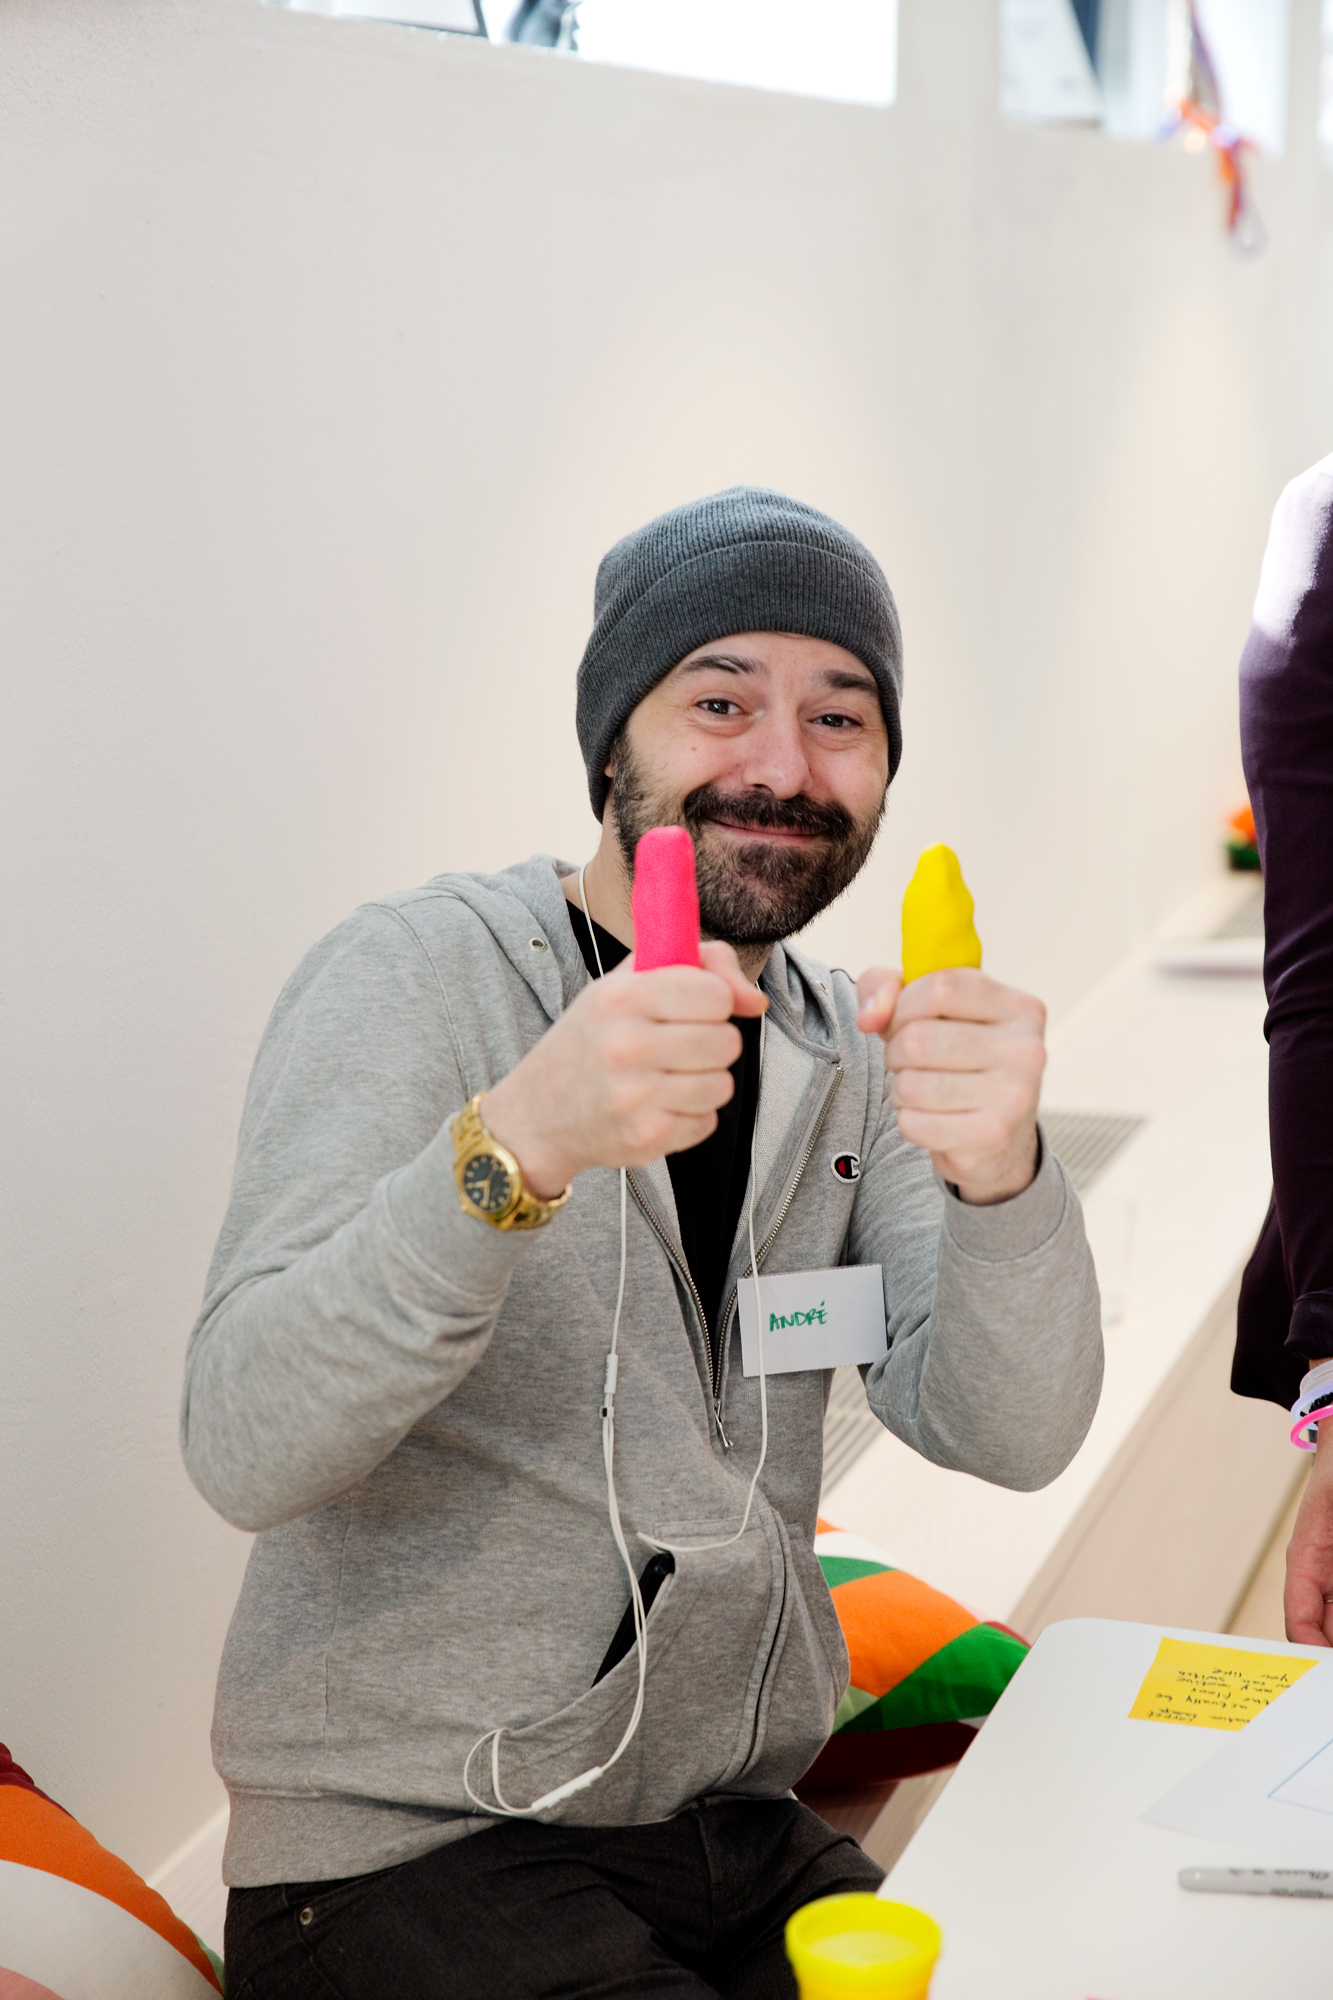 A man wearing a woollen hat holds two pieces of play dough, one yellow and one pink.